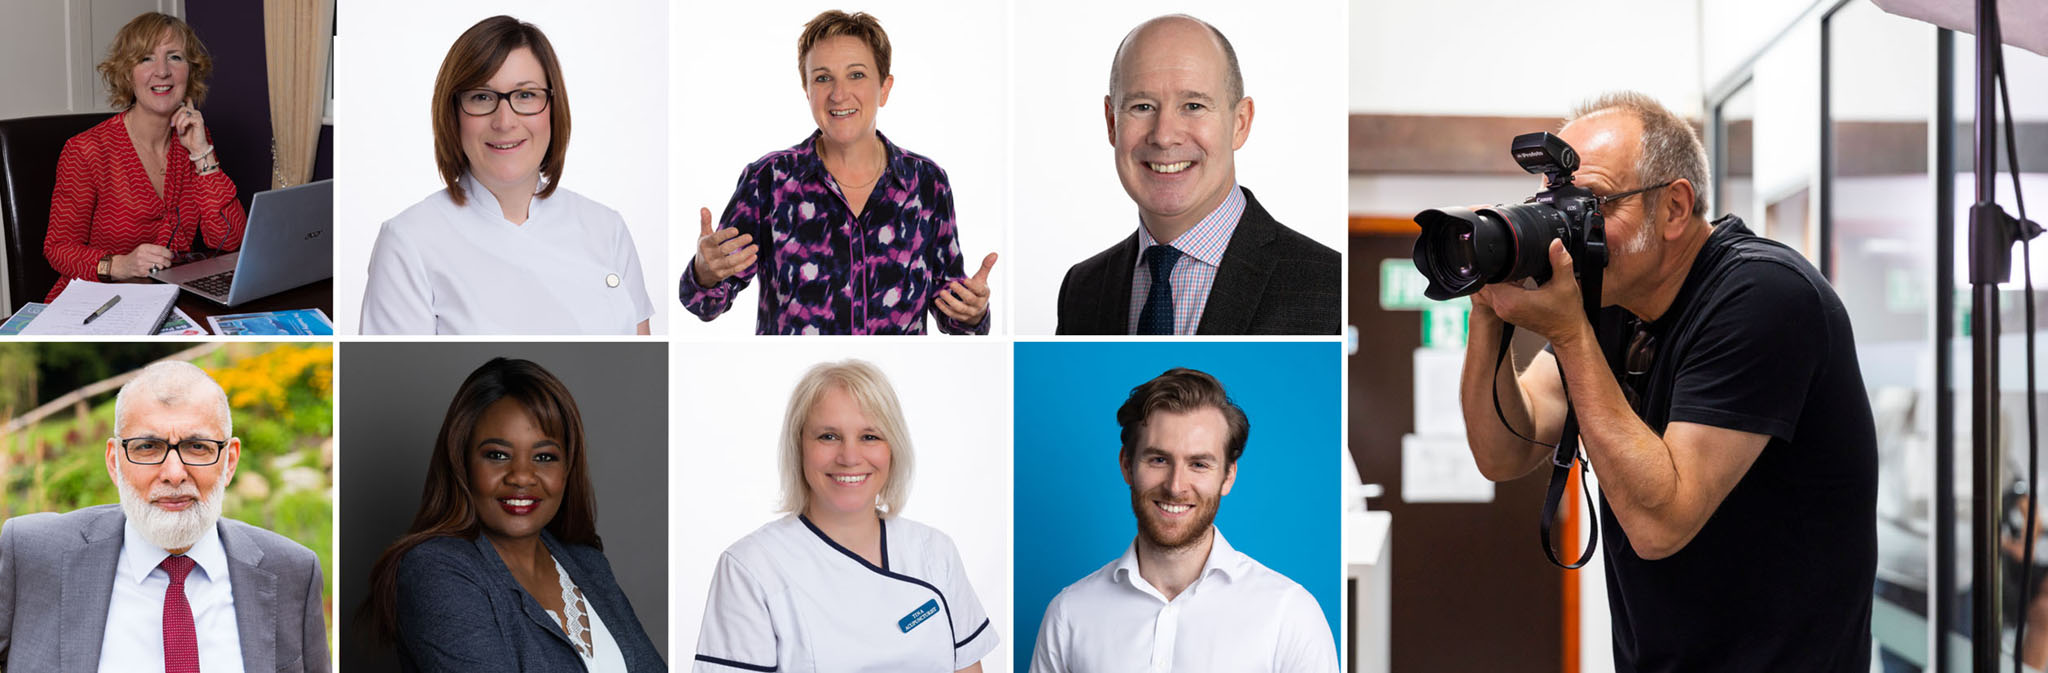 headshots and profile photographs for people working in the public sector